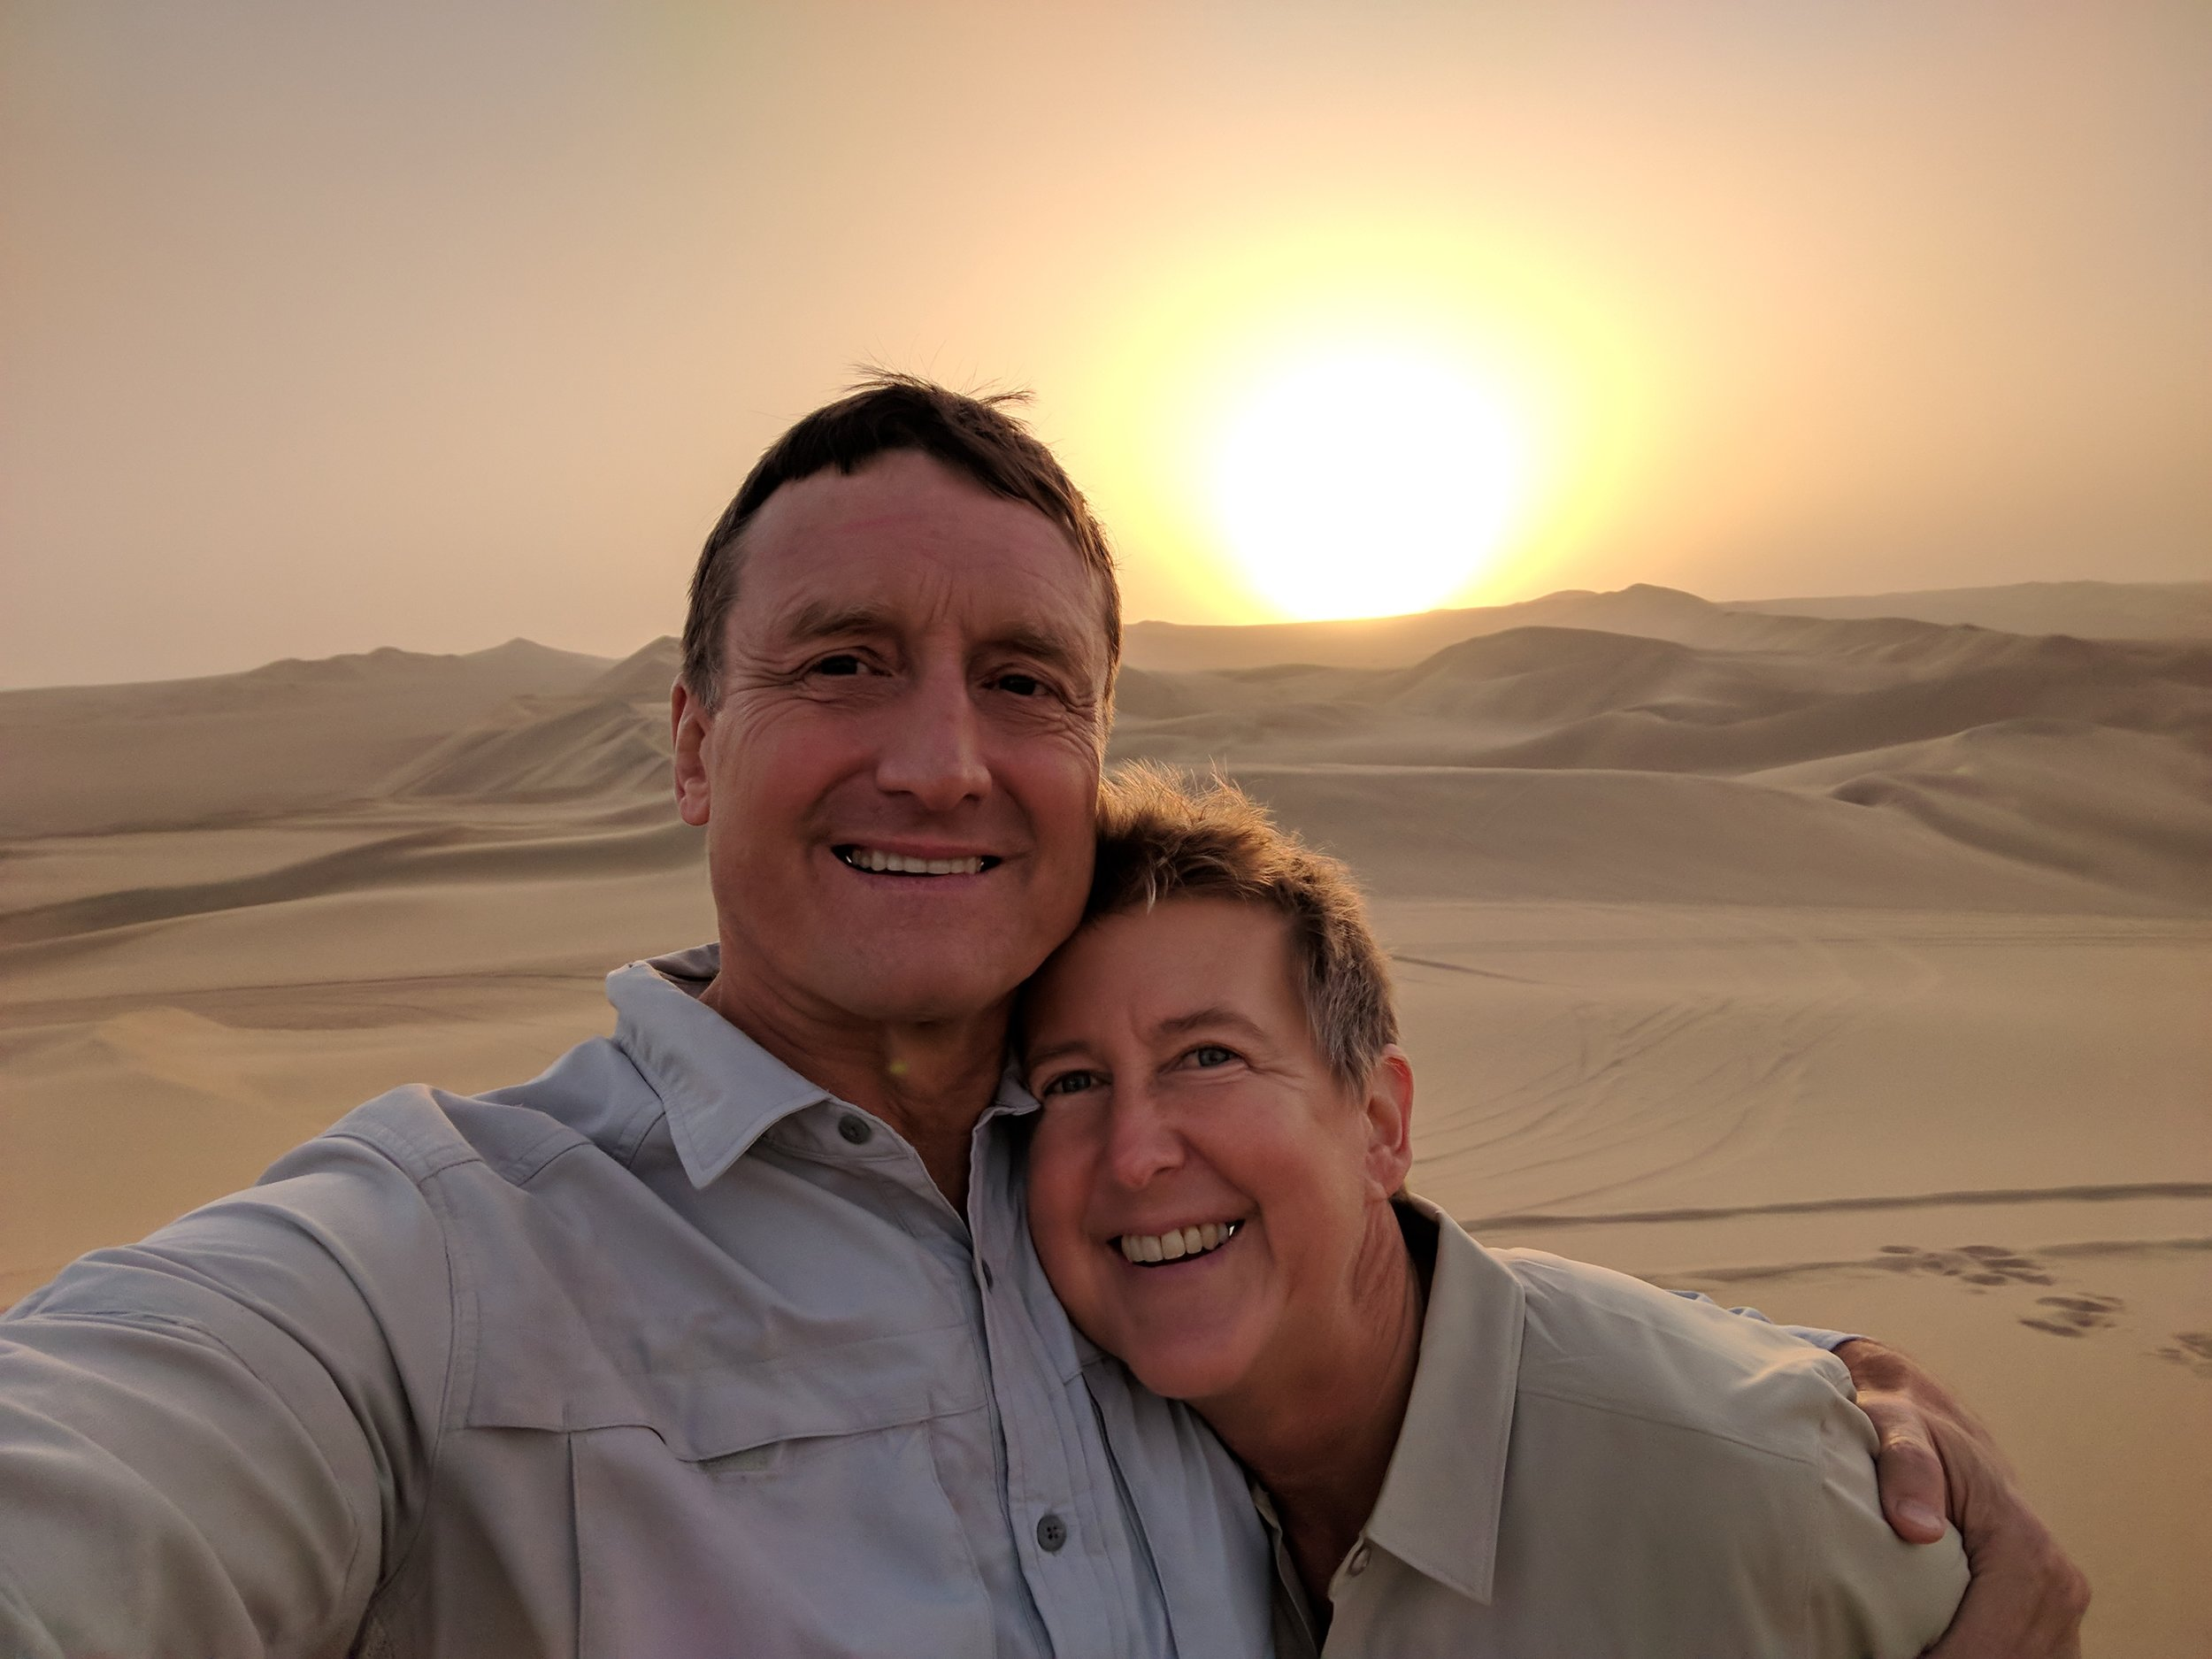 Sunset over the desert at Huacachina (dune buggy ride)